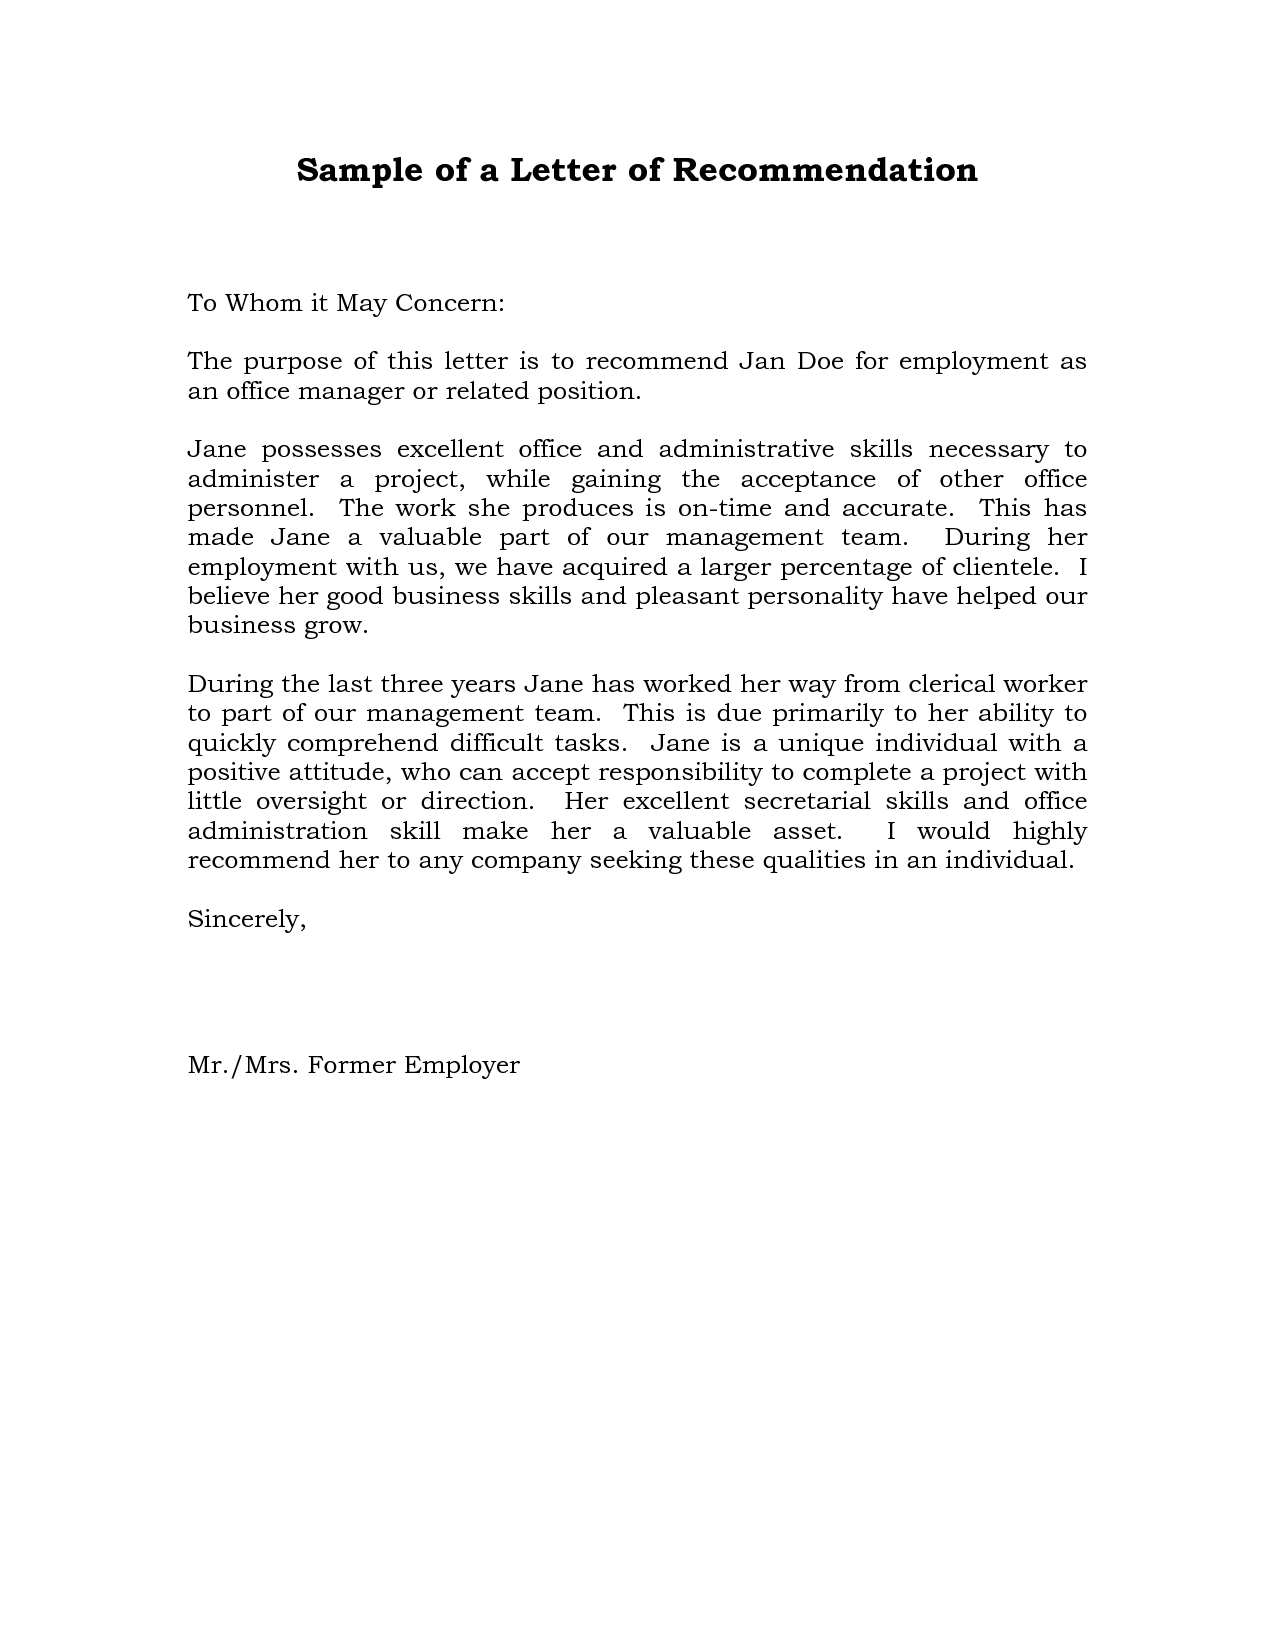 Reference Letter of Recommendation Sample – Formats for Letters of Recommendation